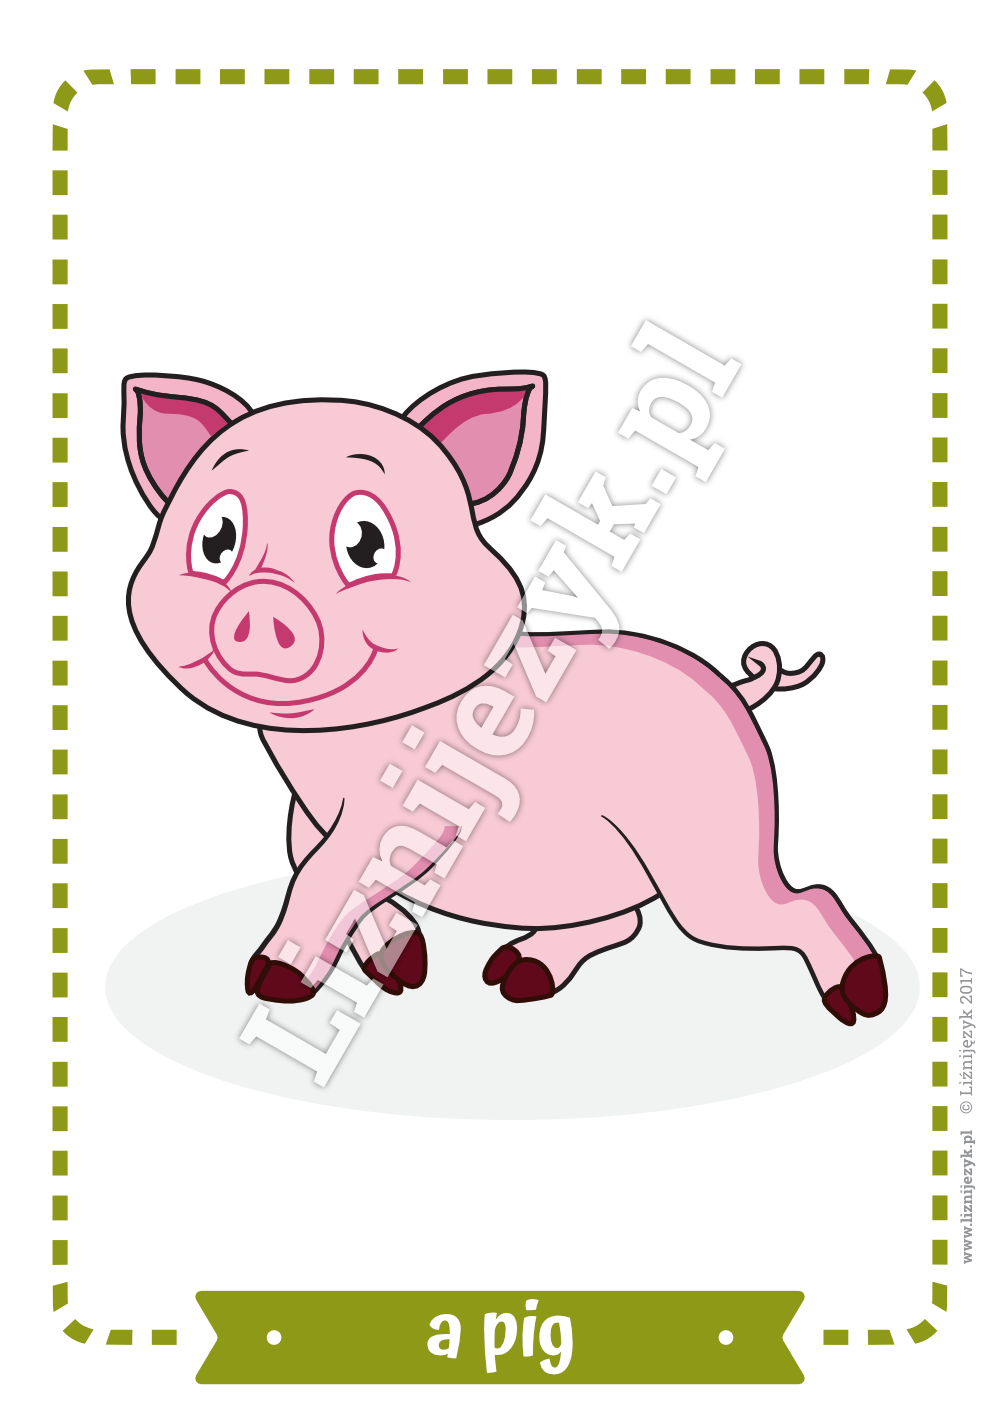 Farm Animals English Flashcards Bahasa inggris, Bahasa